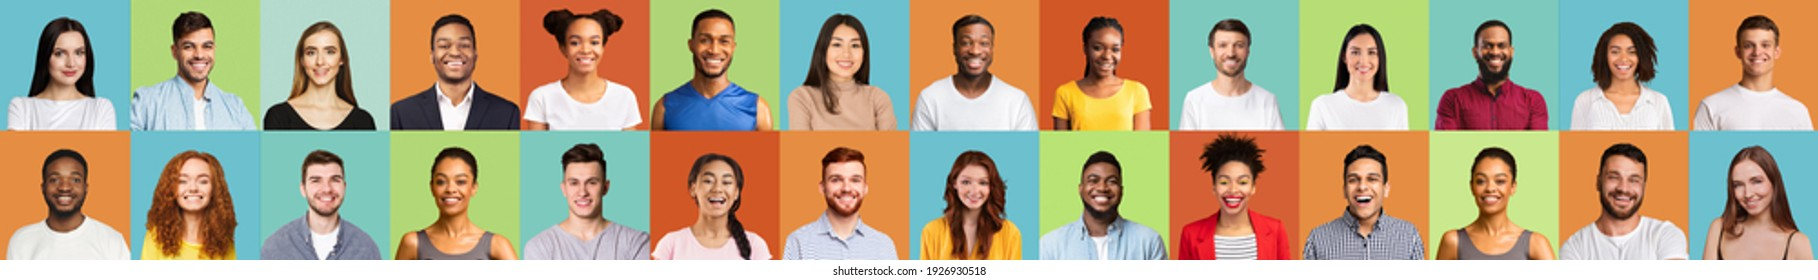 Portraits Collage With Happy People Faces Of Different Race And Age Smiling On Colored Studio Backgrounds. Set Of Multiethnic Millennials Headshot Images, Diversity Concept. Panorama